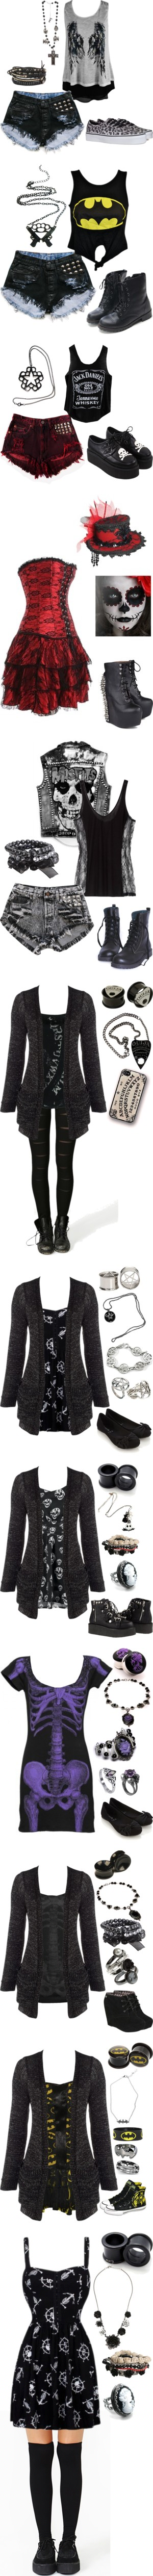 awesomness by blade-trista18 on Polyvore featuring Levi's, Vans, Chan Luu, M:UK, Jeffrey Campbell, ALLMYLOVE, Lipsy, CO, Bloody Mary Metal and Pamela Love